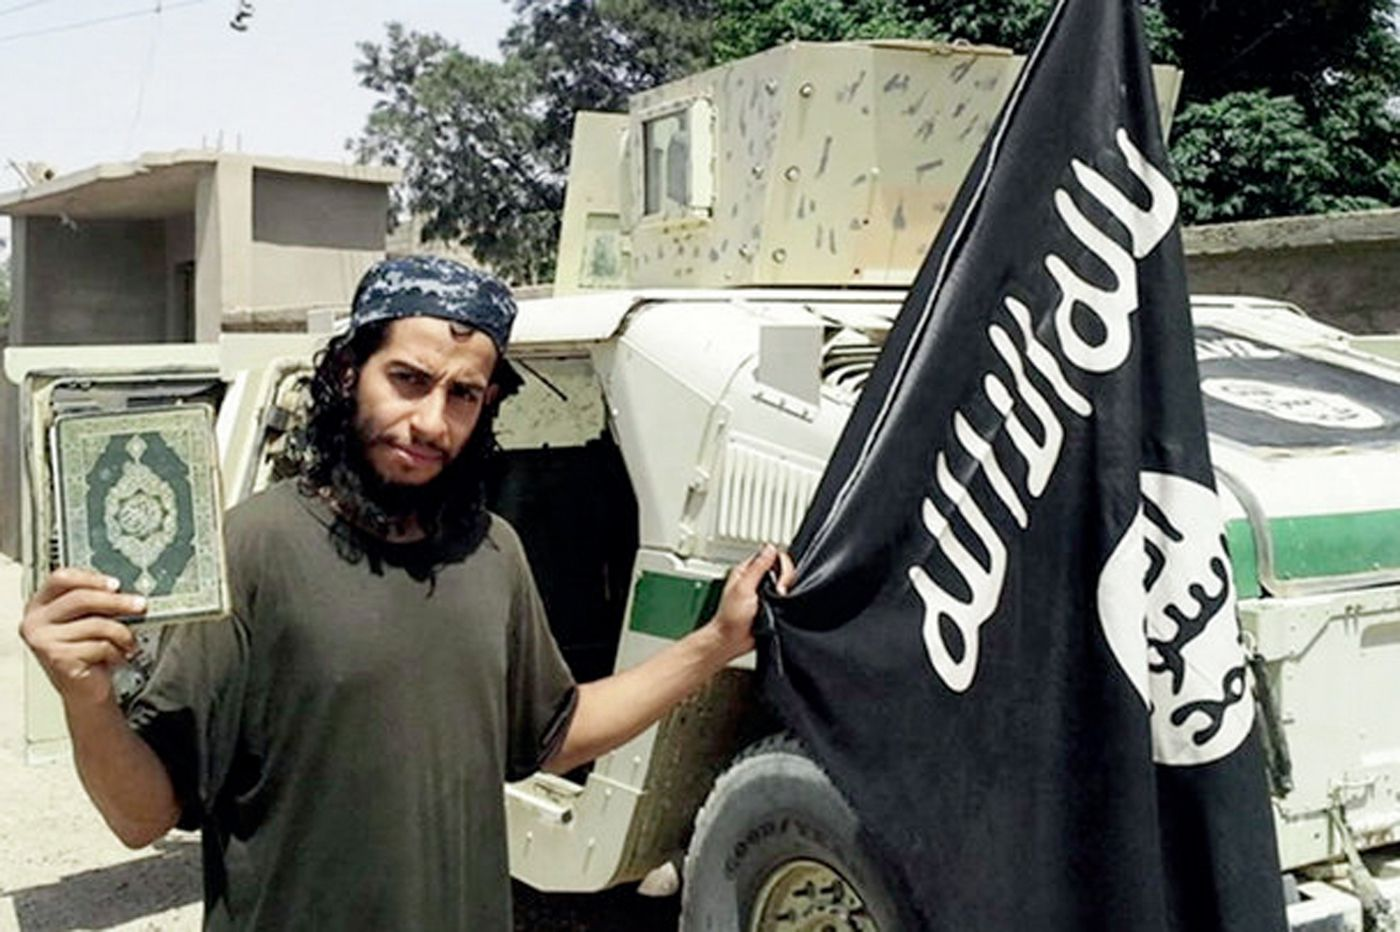 What drives ISIS supporters?